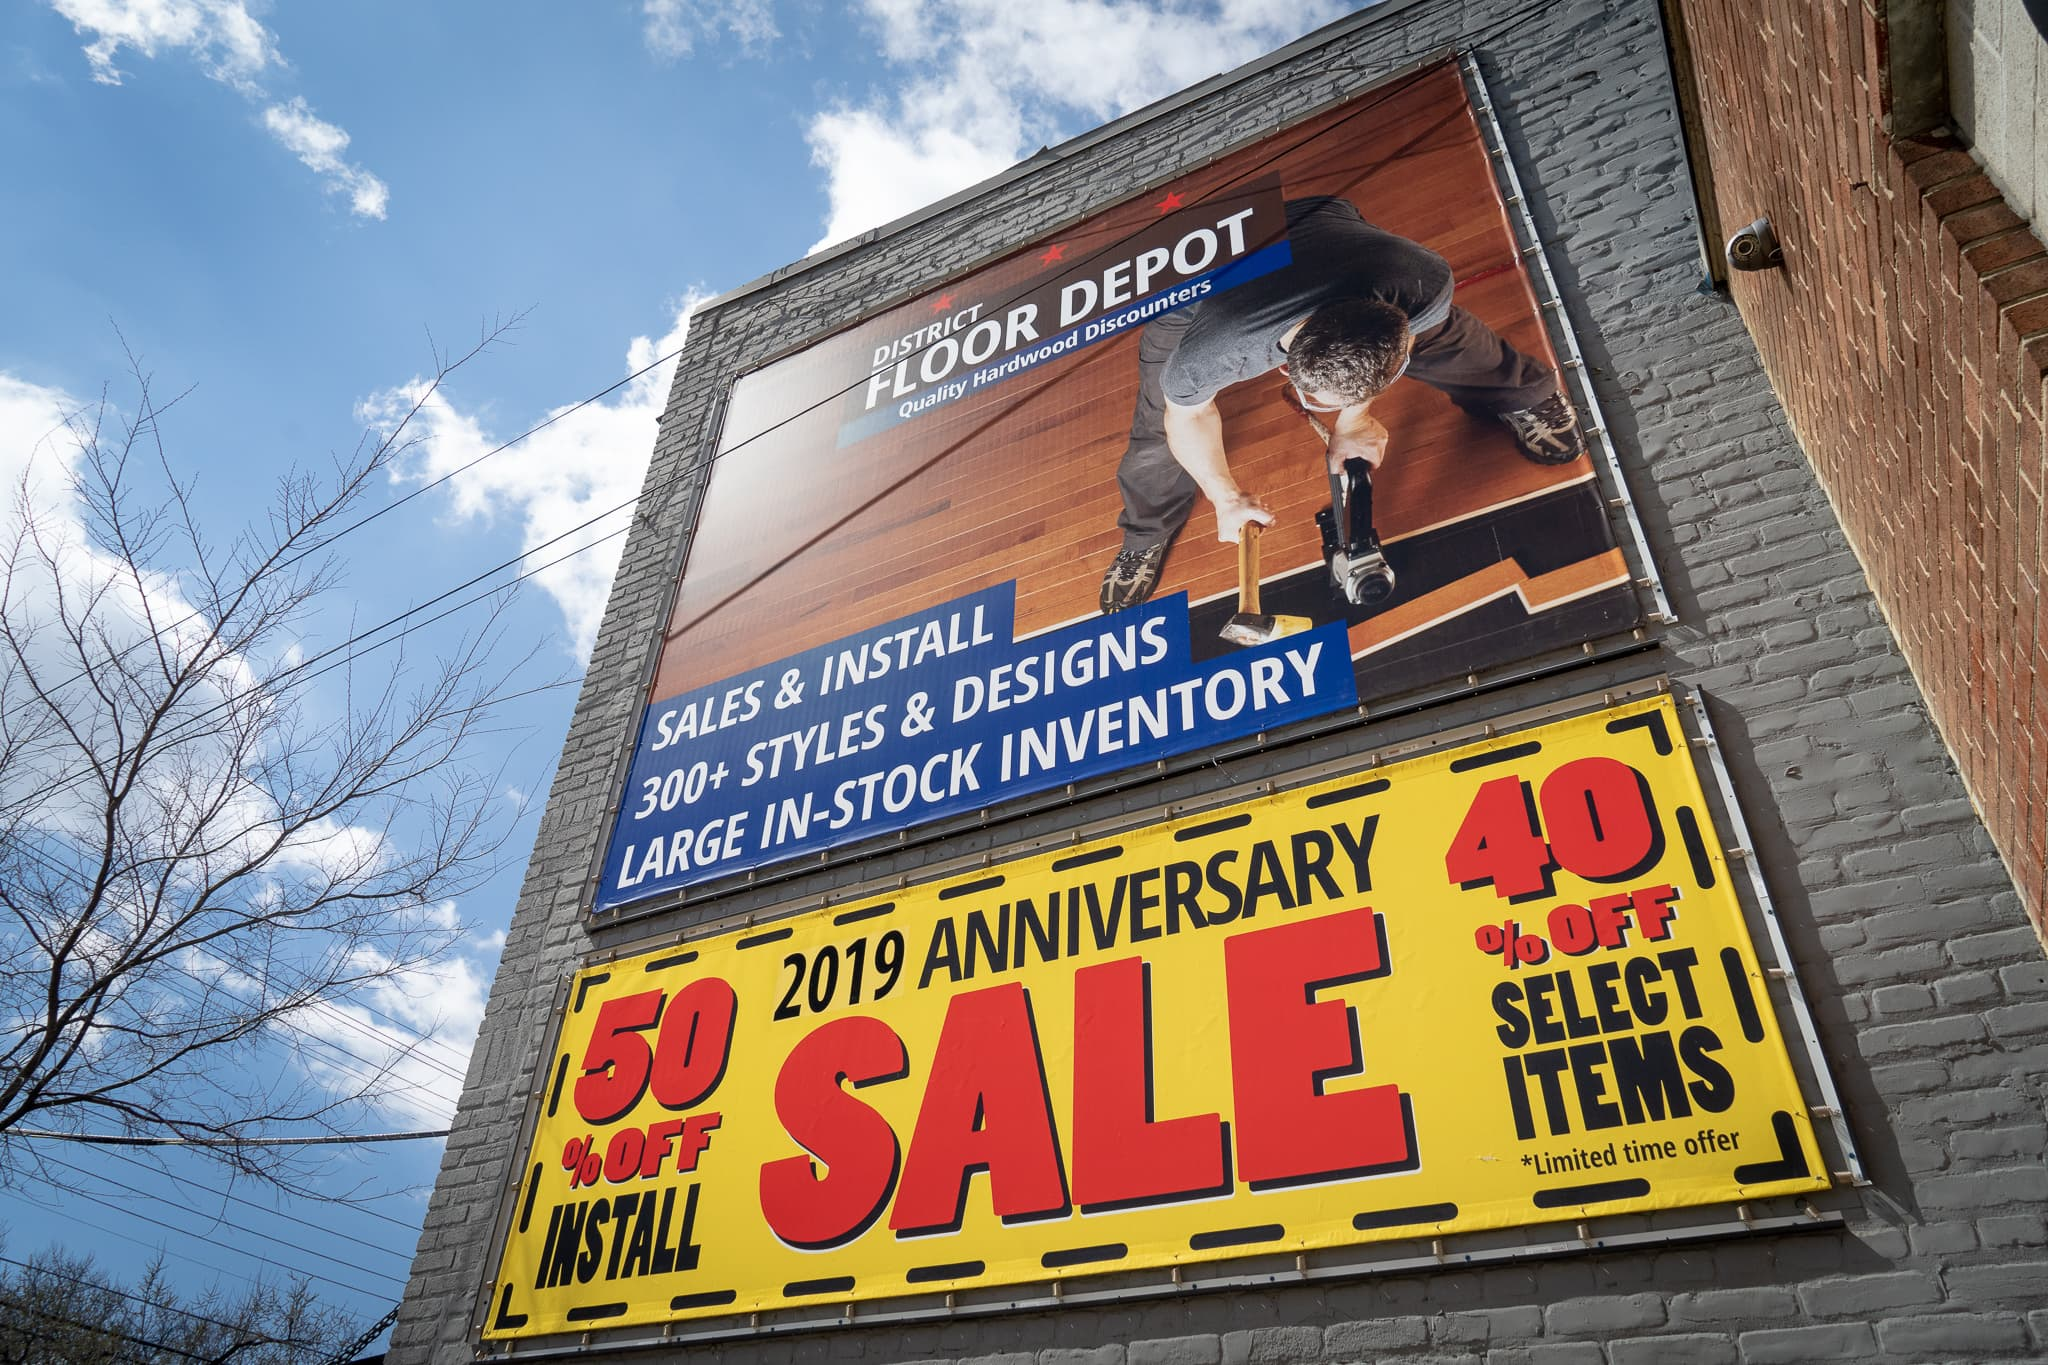 district-floor-depot-sale-banner-washington-dc